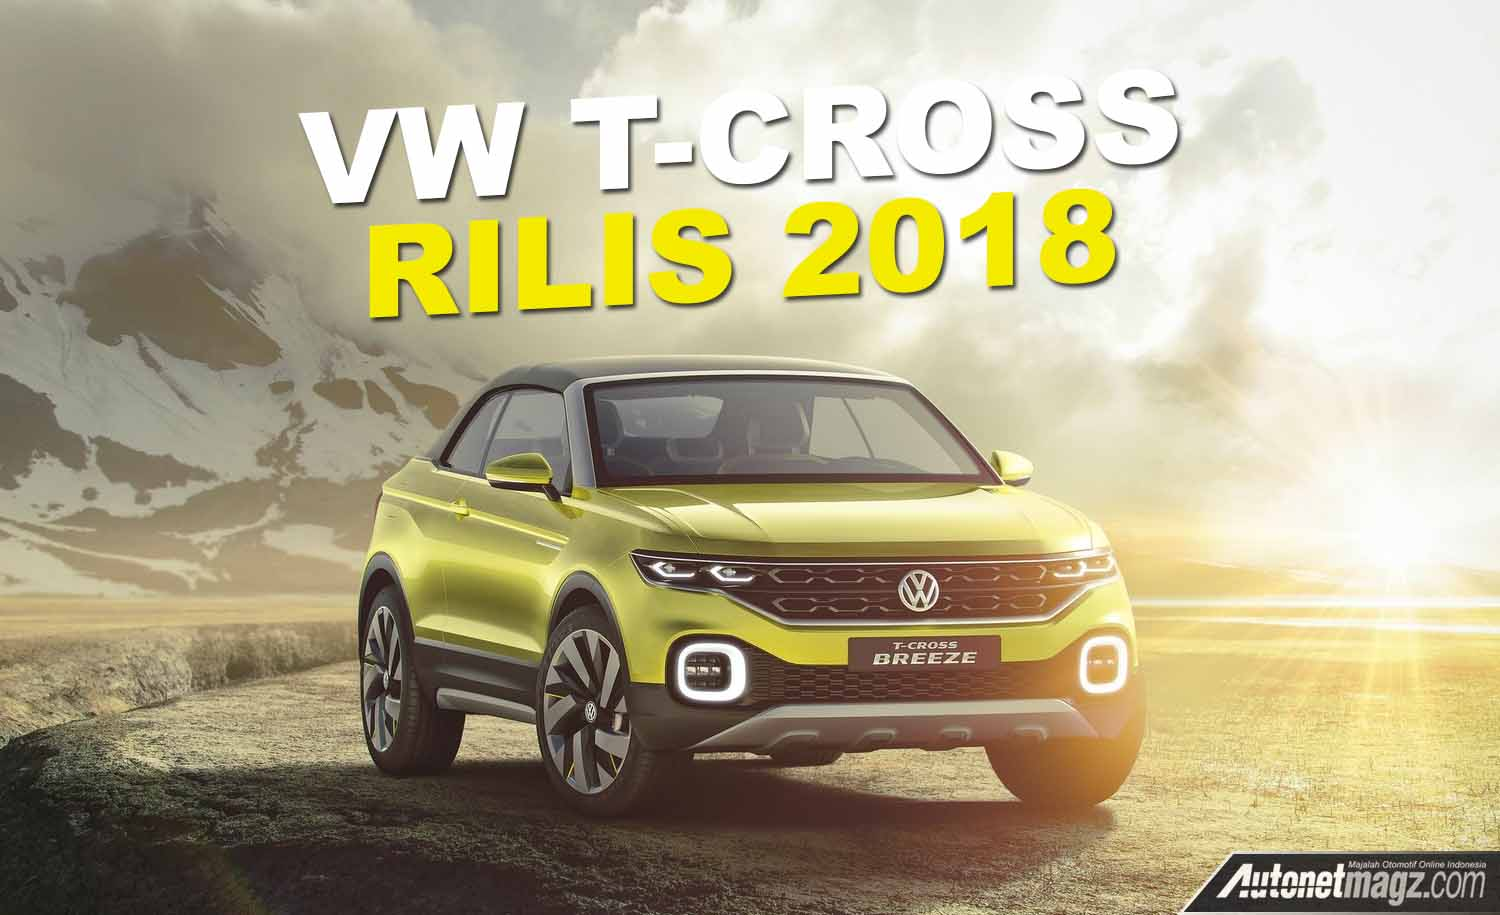 , cover VW T-Cross Rilis 2018: cover VW T-Cross Rilis 2018